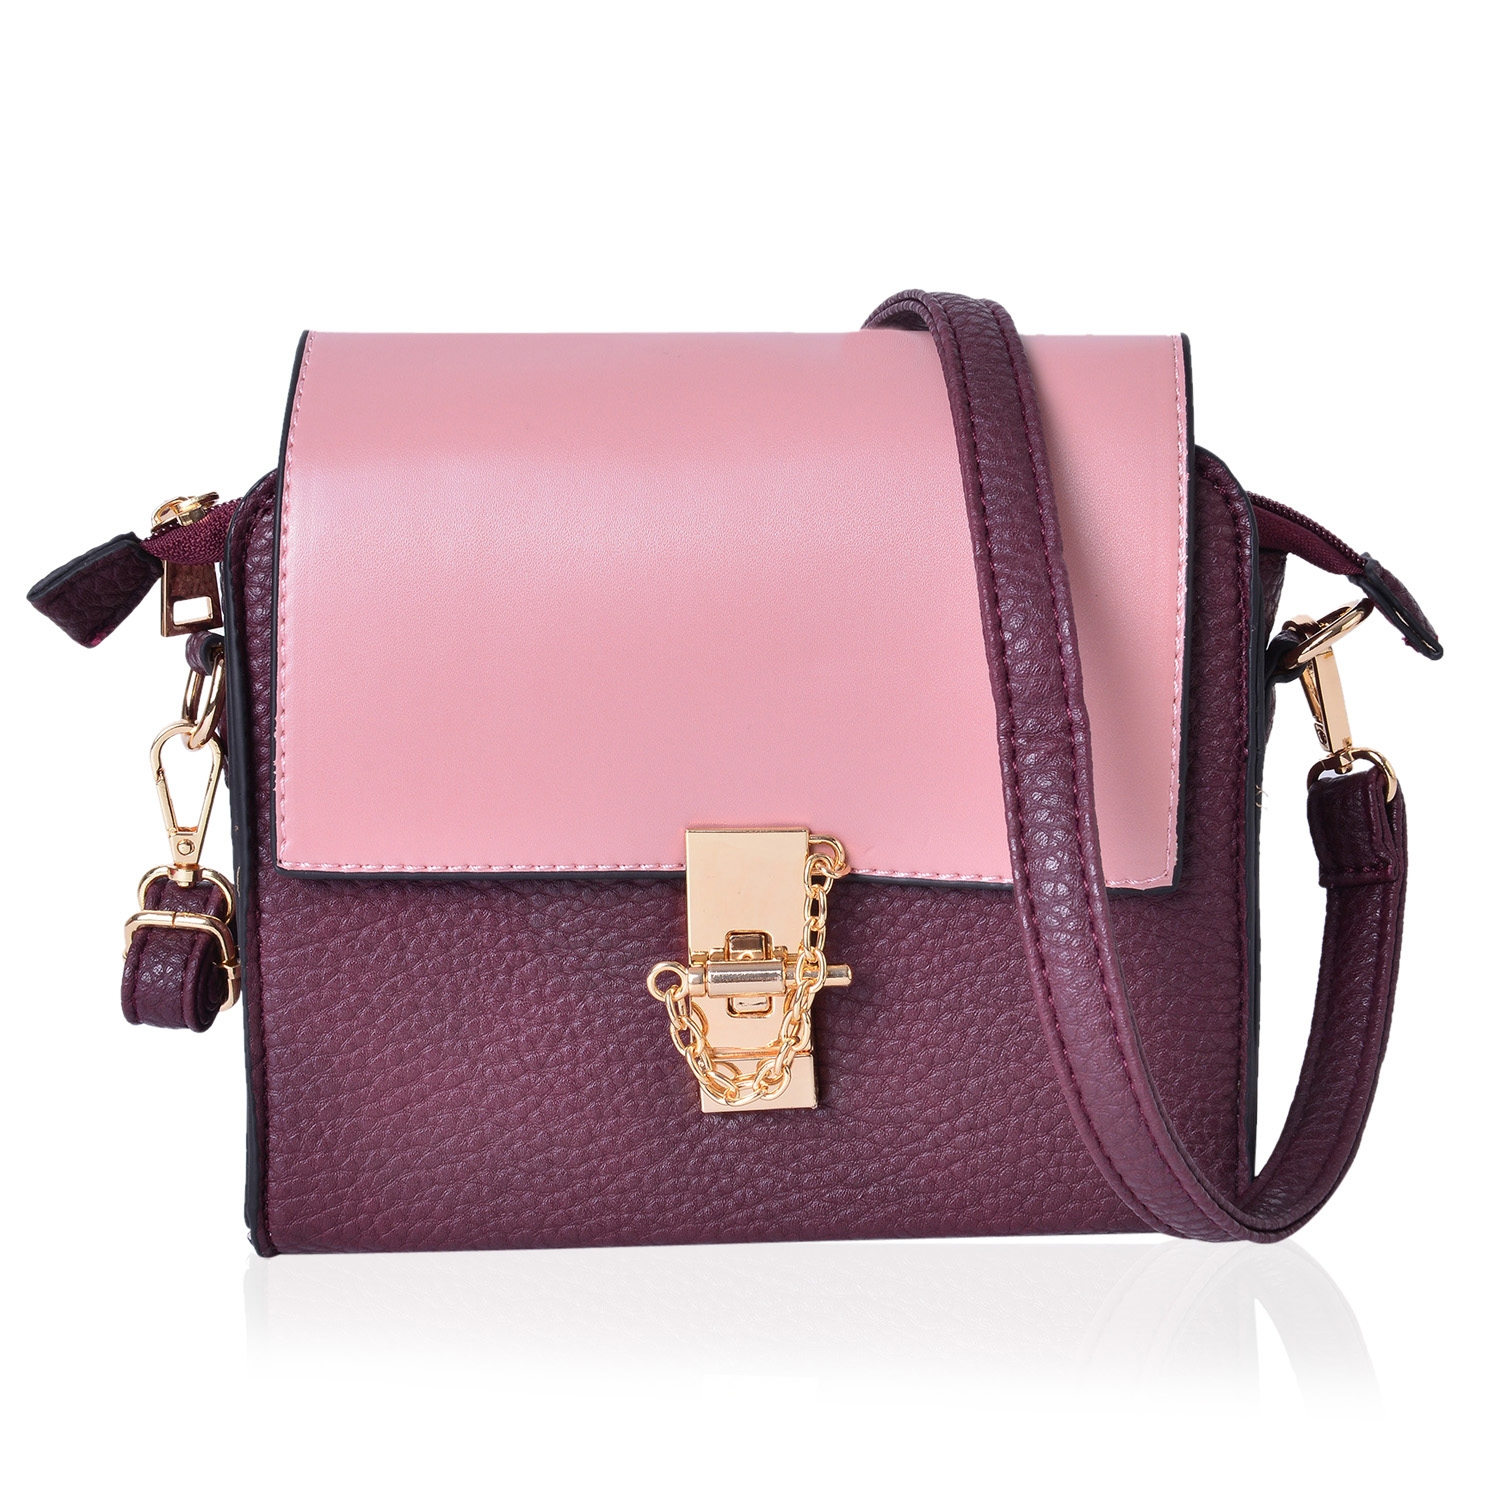 Pink and Plum Faux Leather Crossbody Bag with Zipper Closure (8x3x7 in)